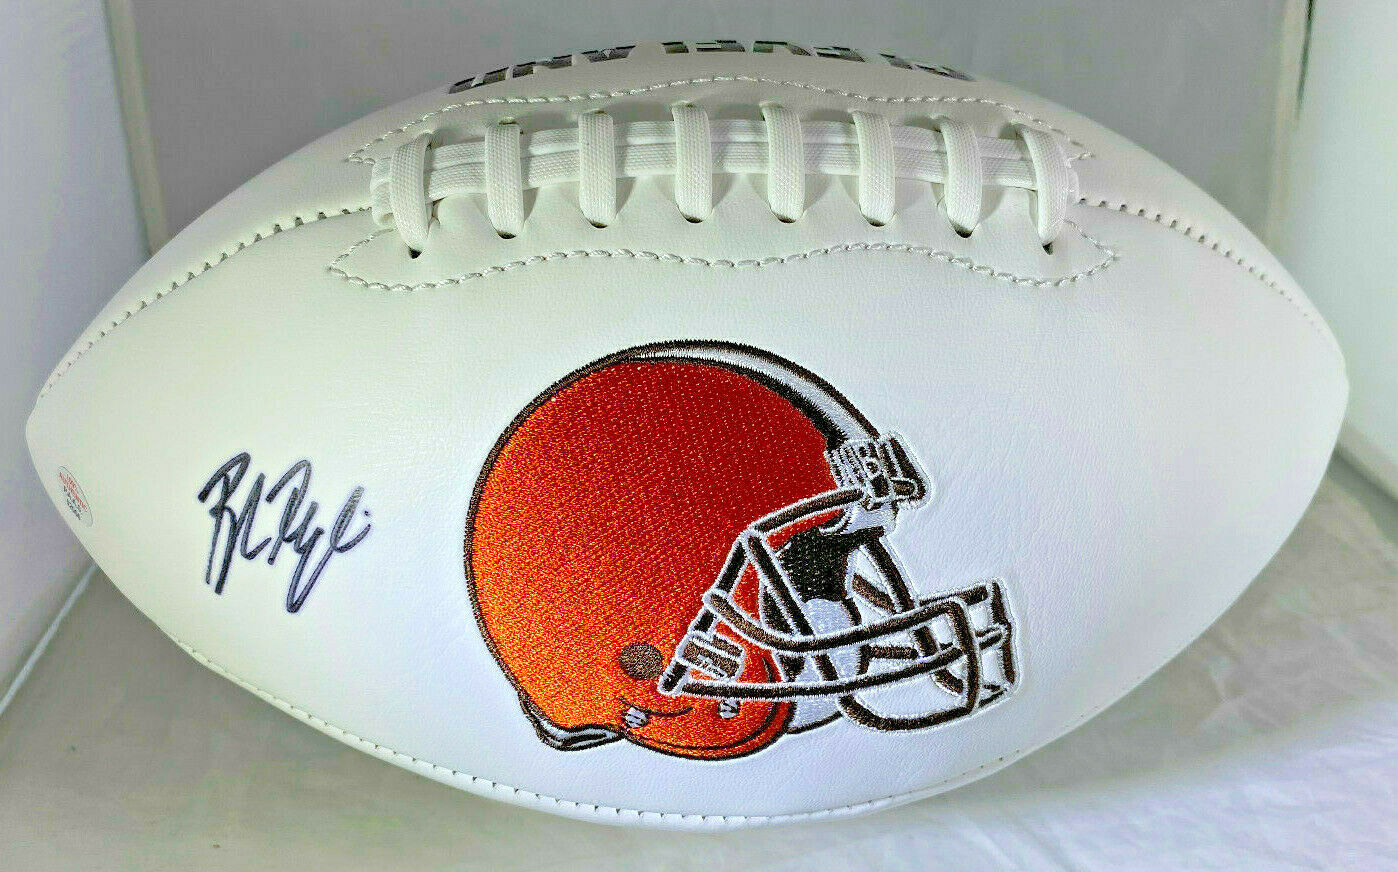 BAKER MAYFIELD / AUTOGRAPHED CLEVELAND BROWNS LOGO WHITE PANELED FOOTBALL / COA